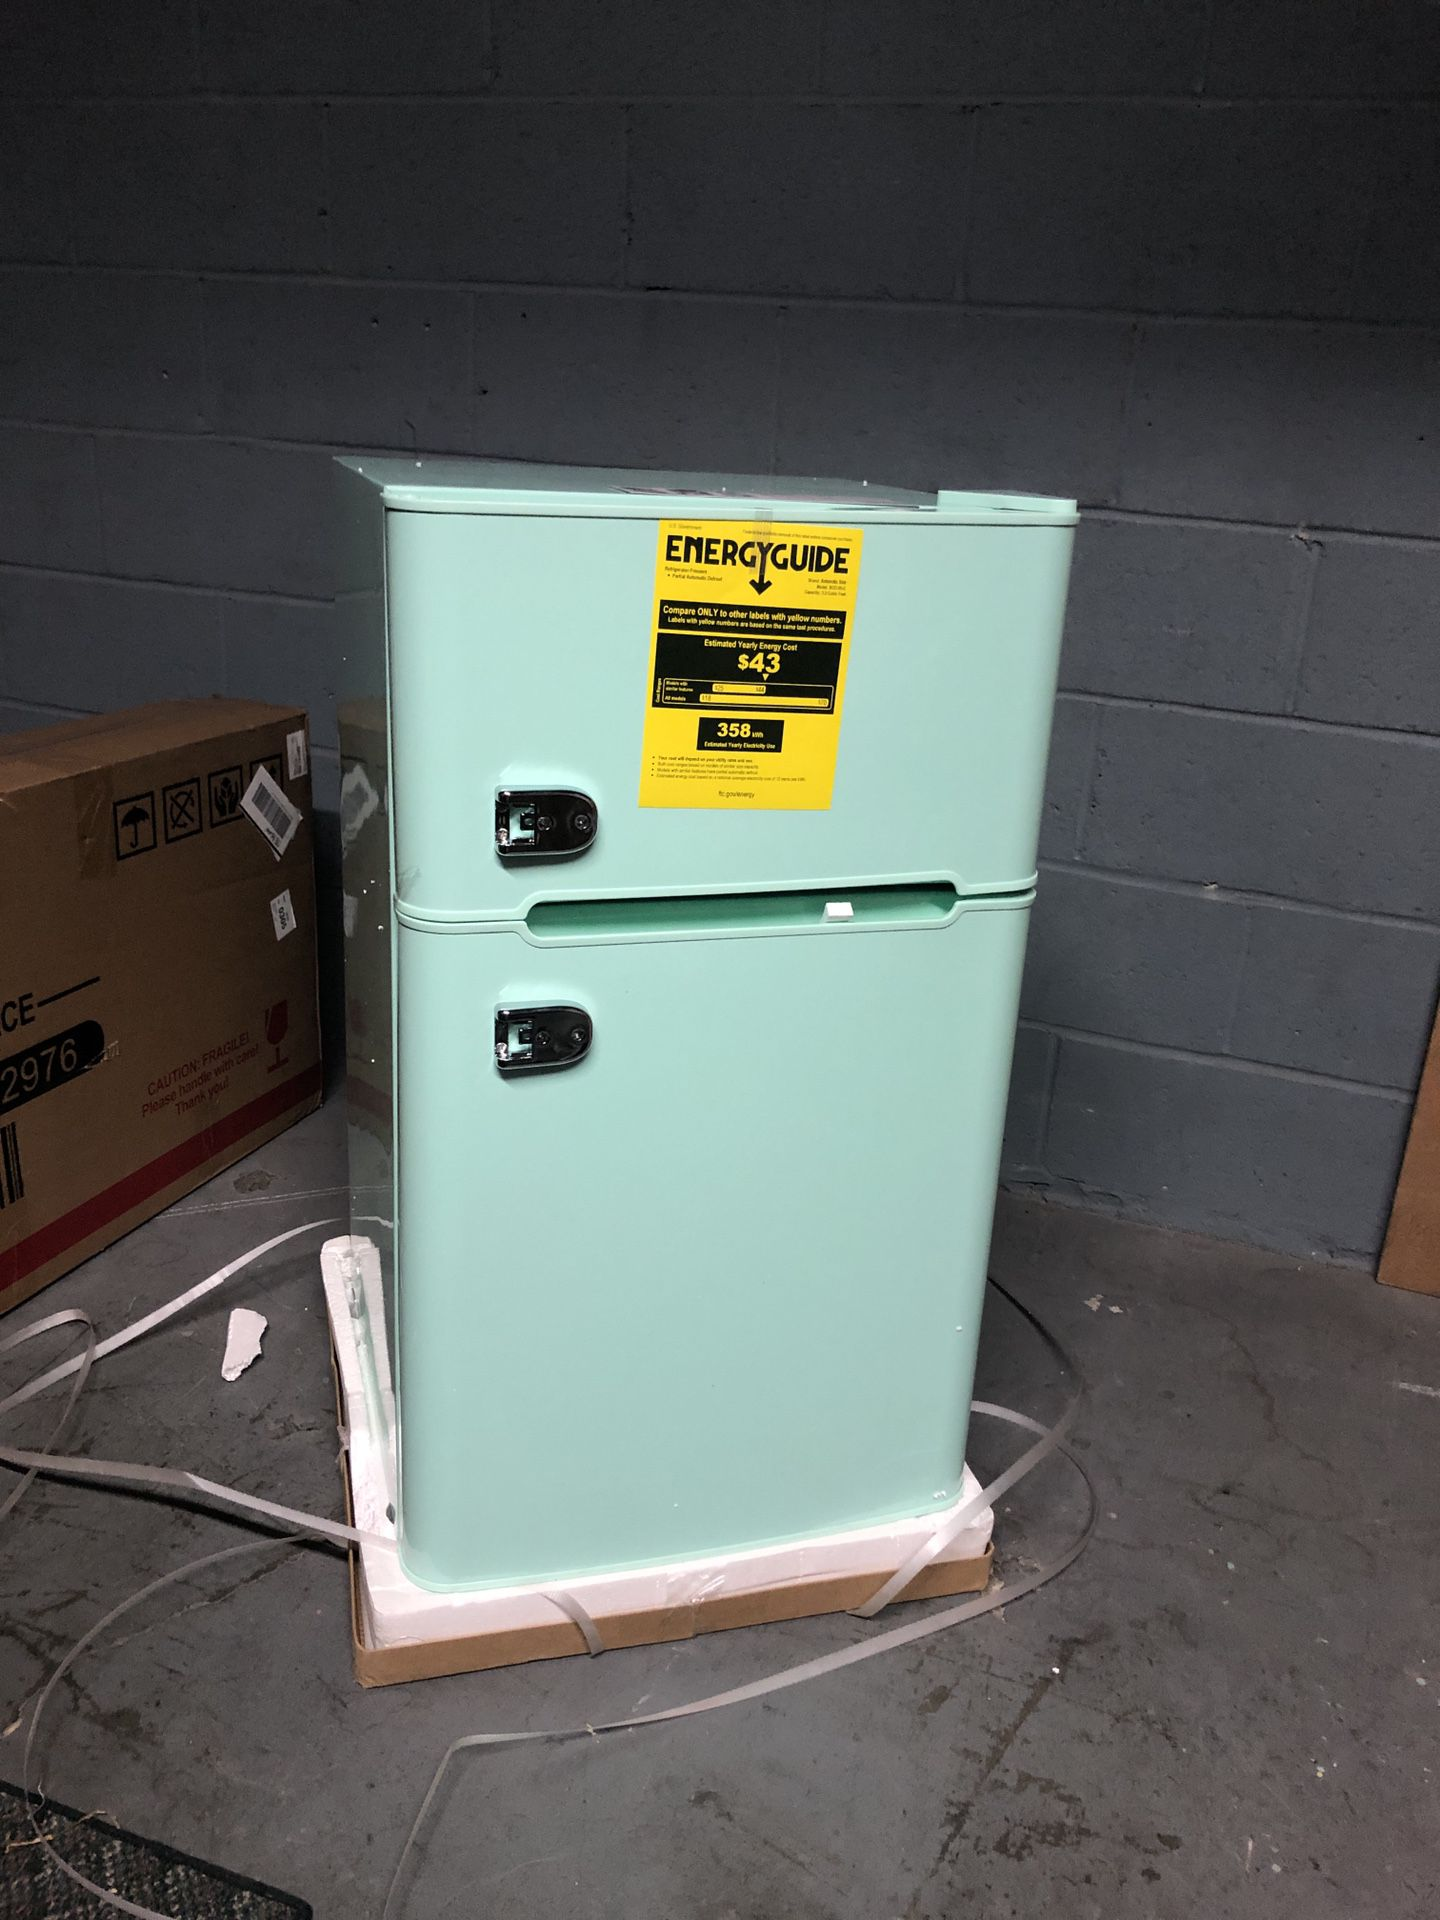 Compact Mini Refrigerator with Separate Freezer in the box with small dent on one side